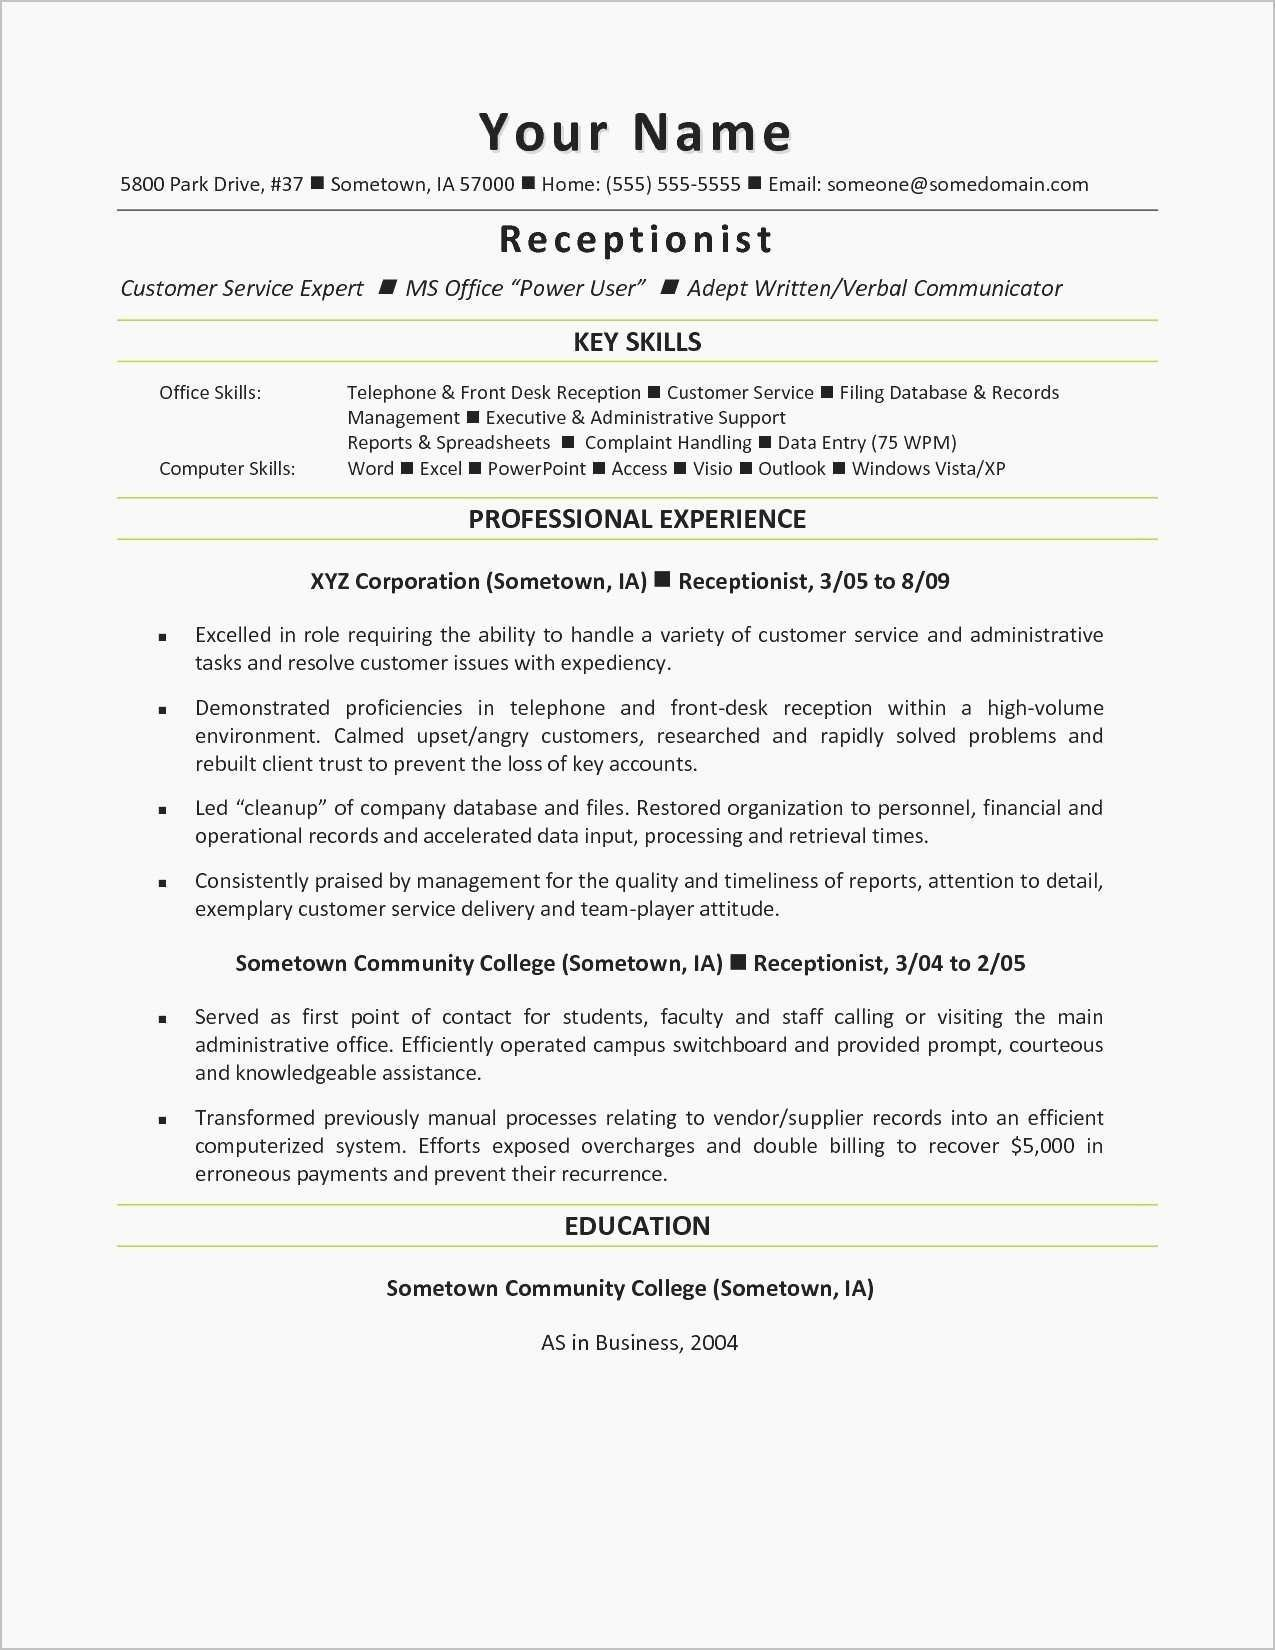 Corporate bylaws Template Pdf Unique Inspirational Corporate bylaws Sample Pdf